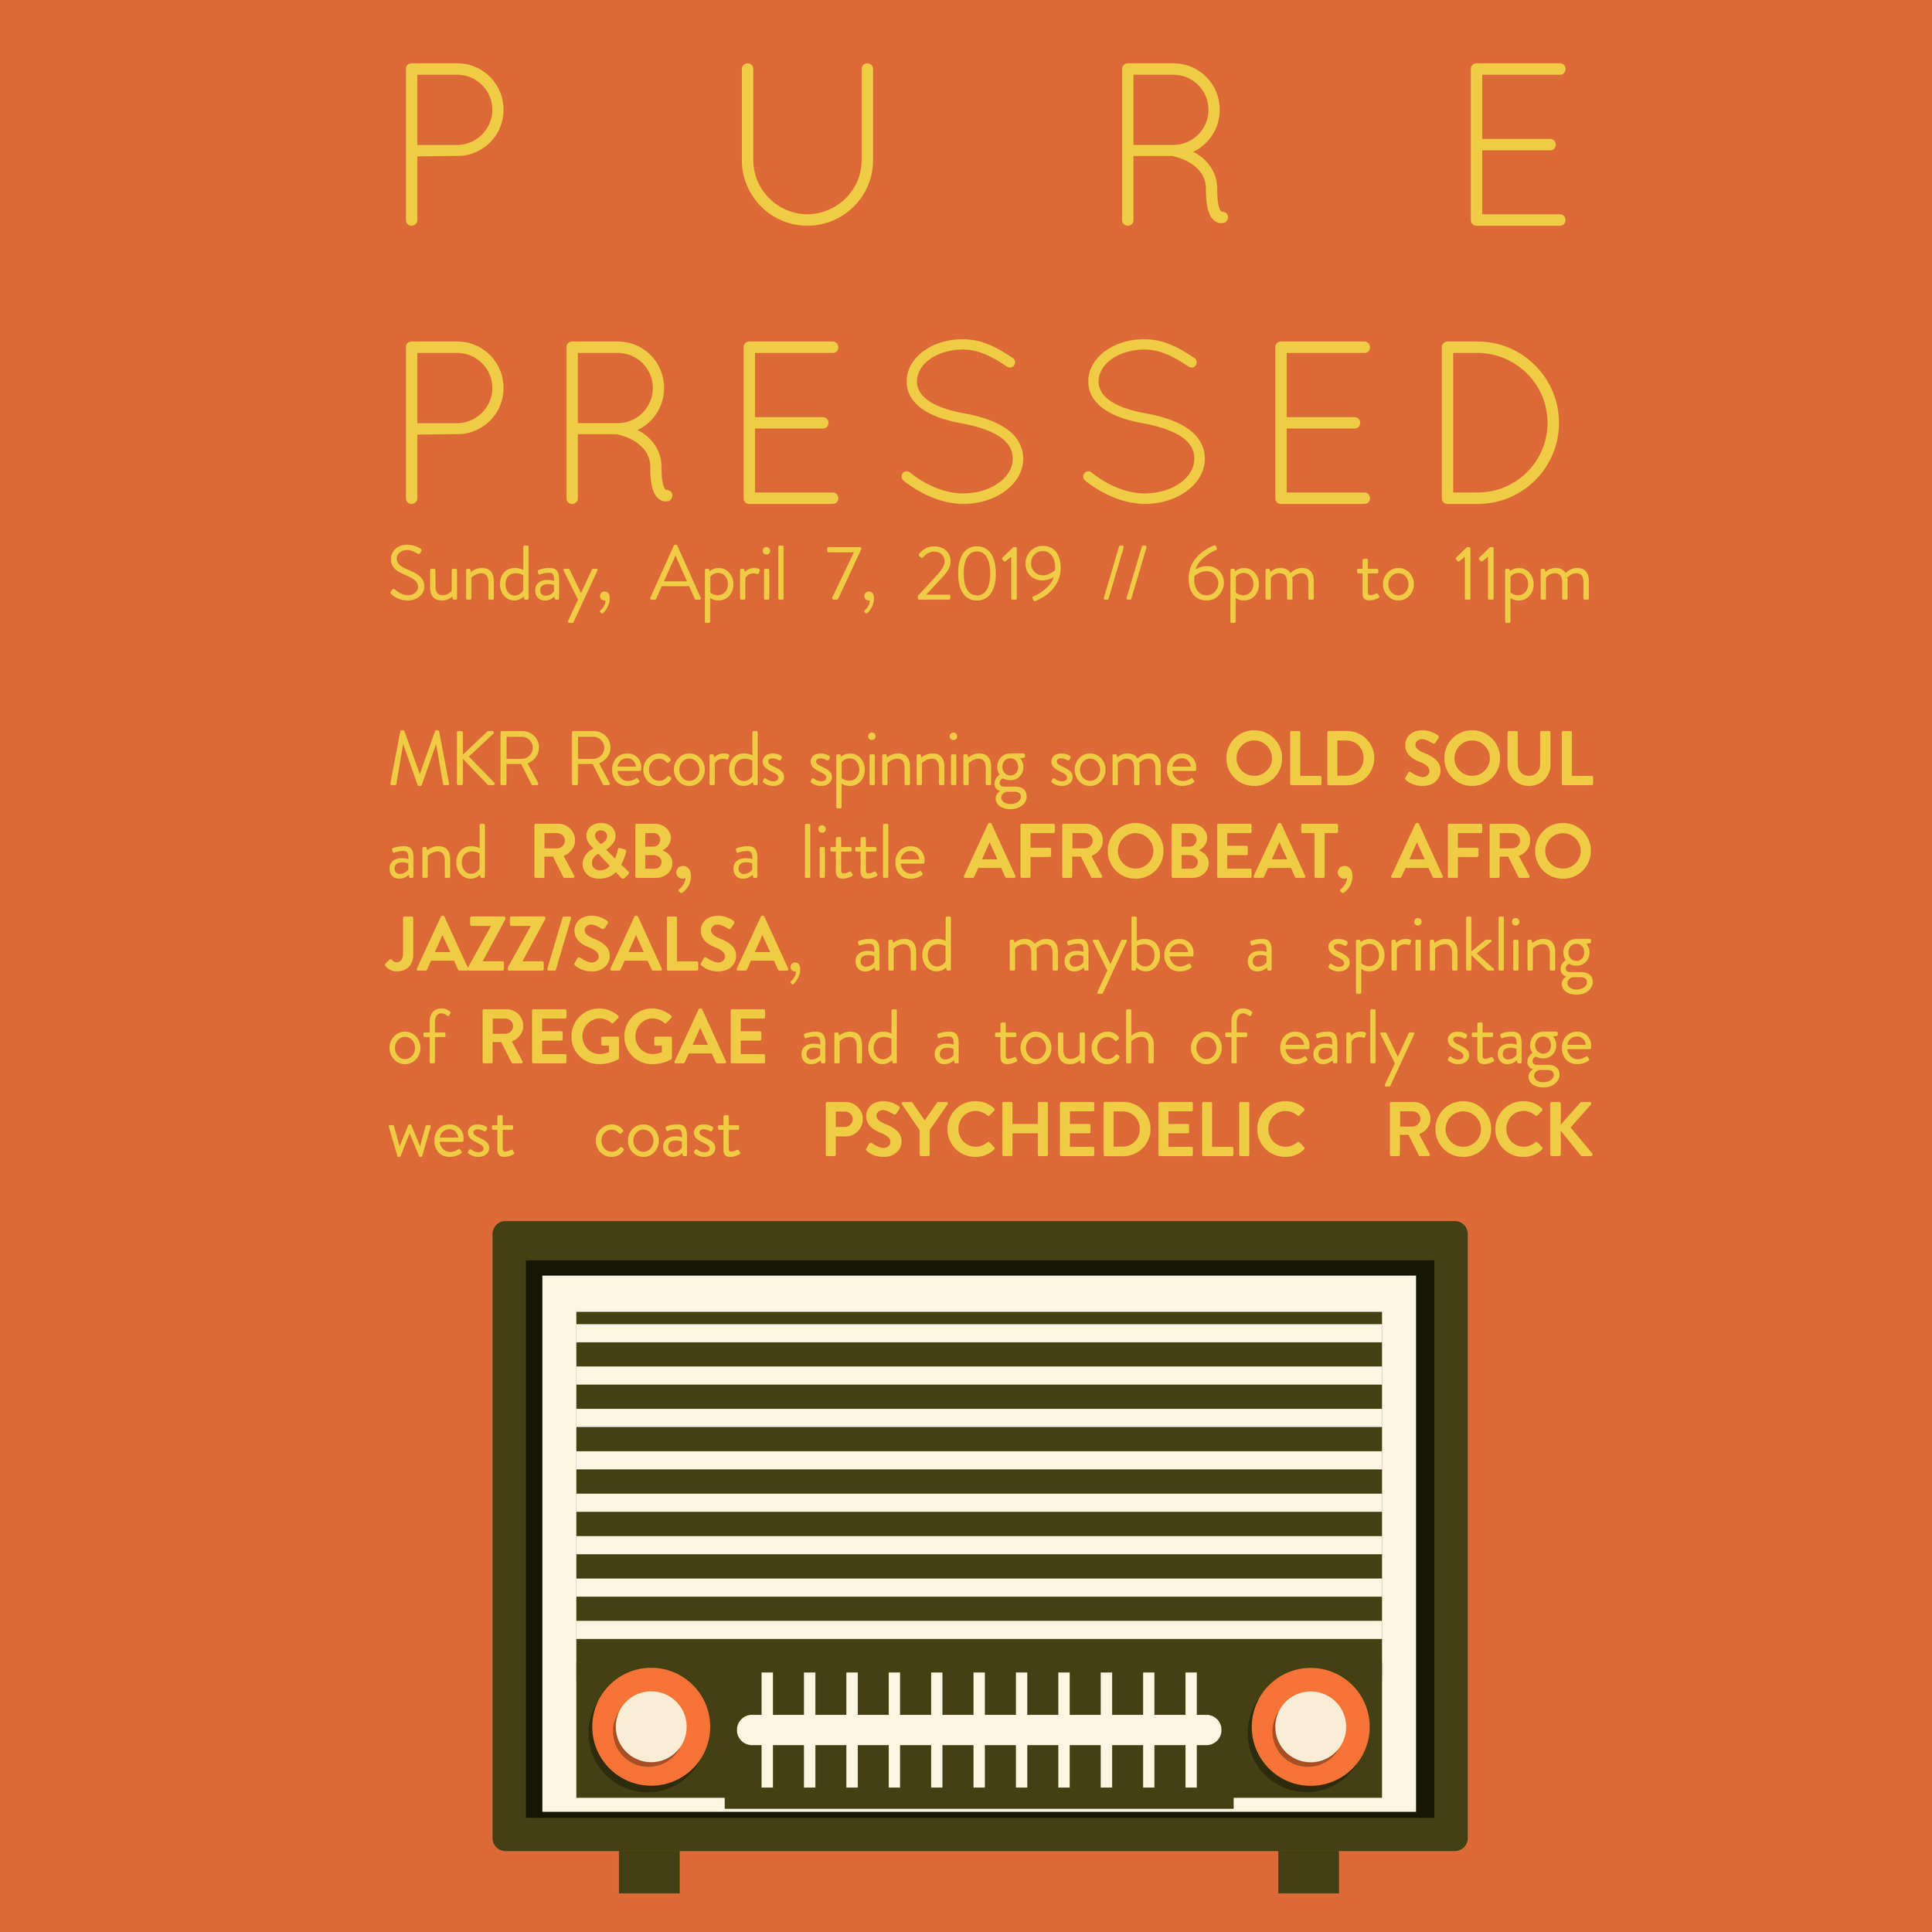 Pure Pressed Flyer Square April.jpg